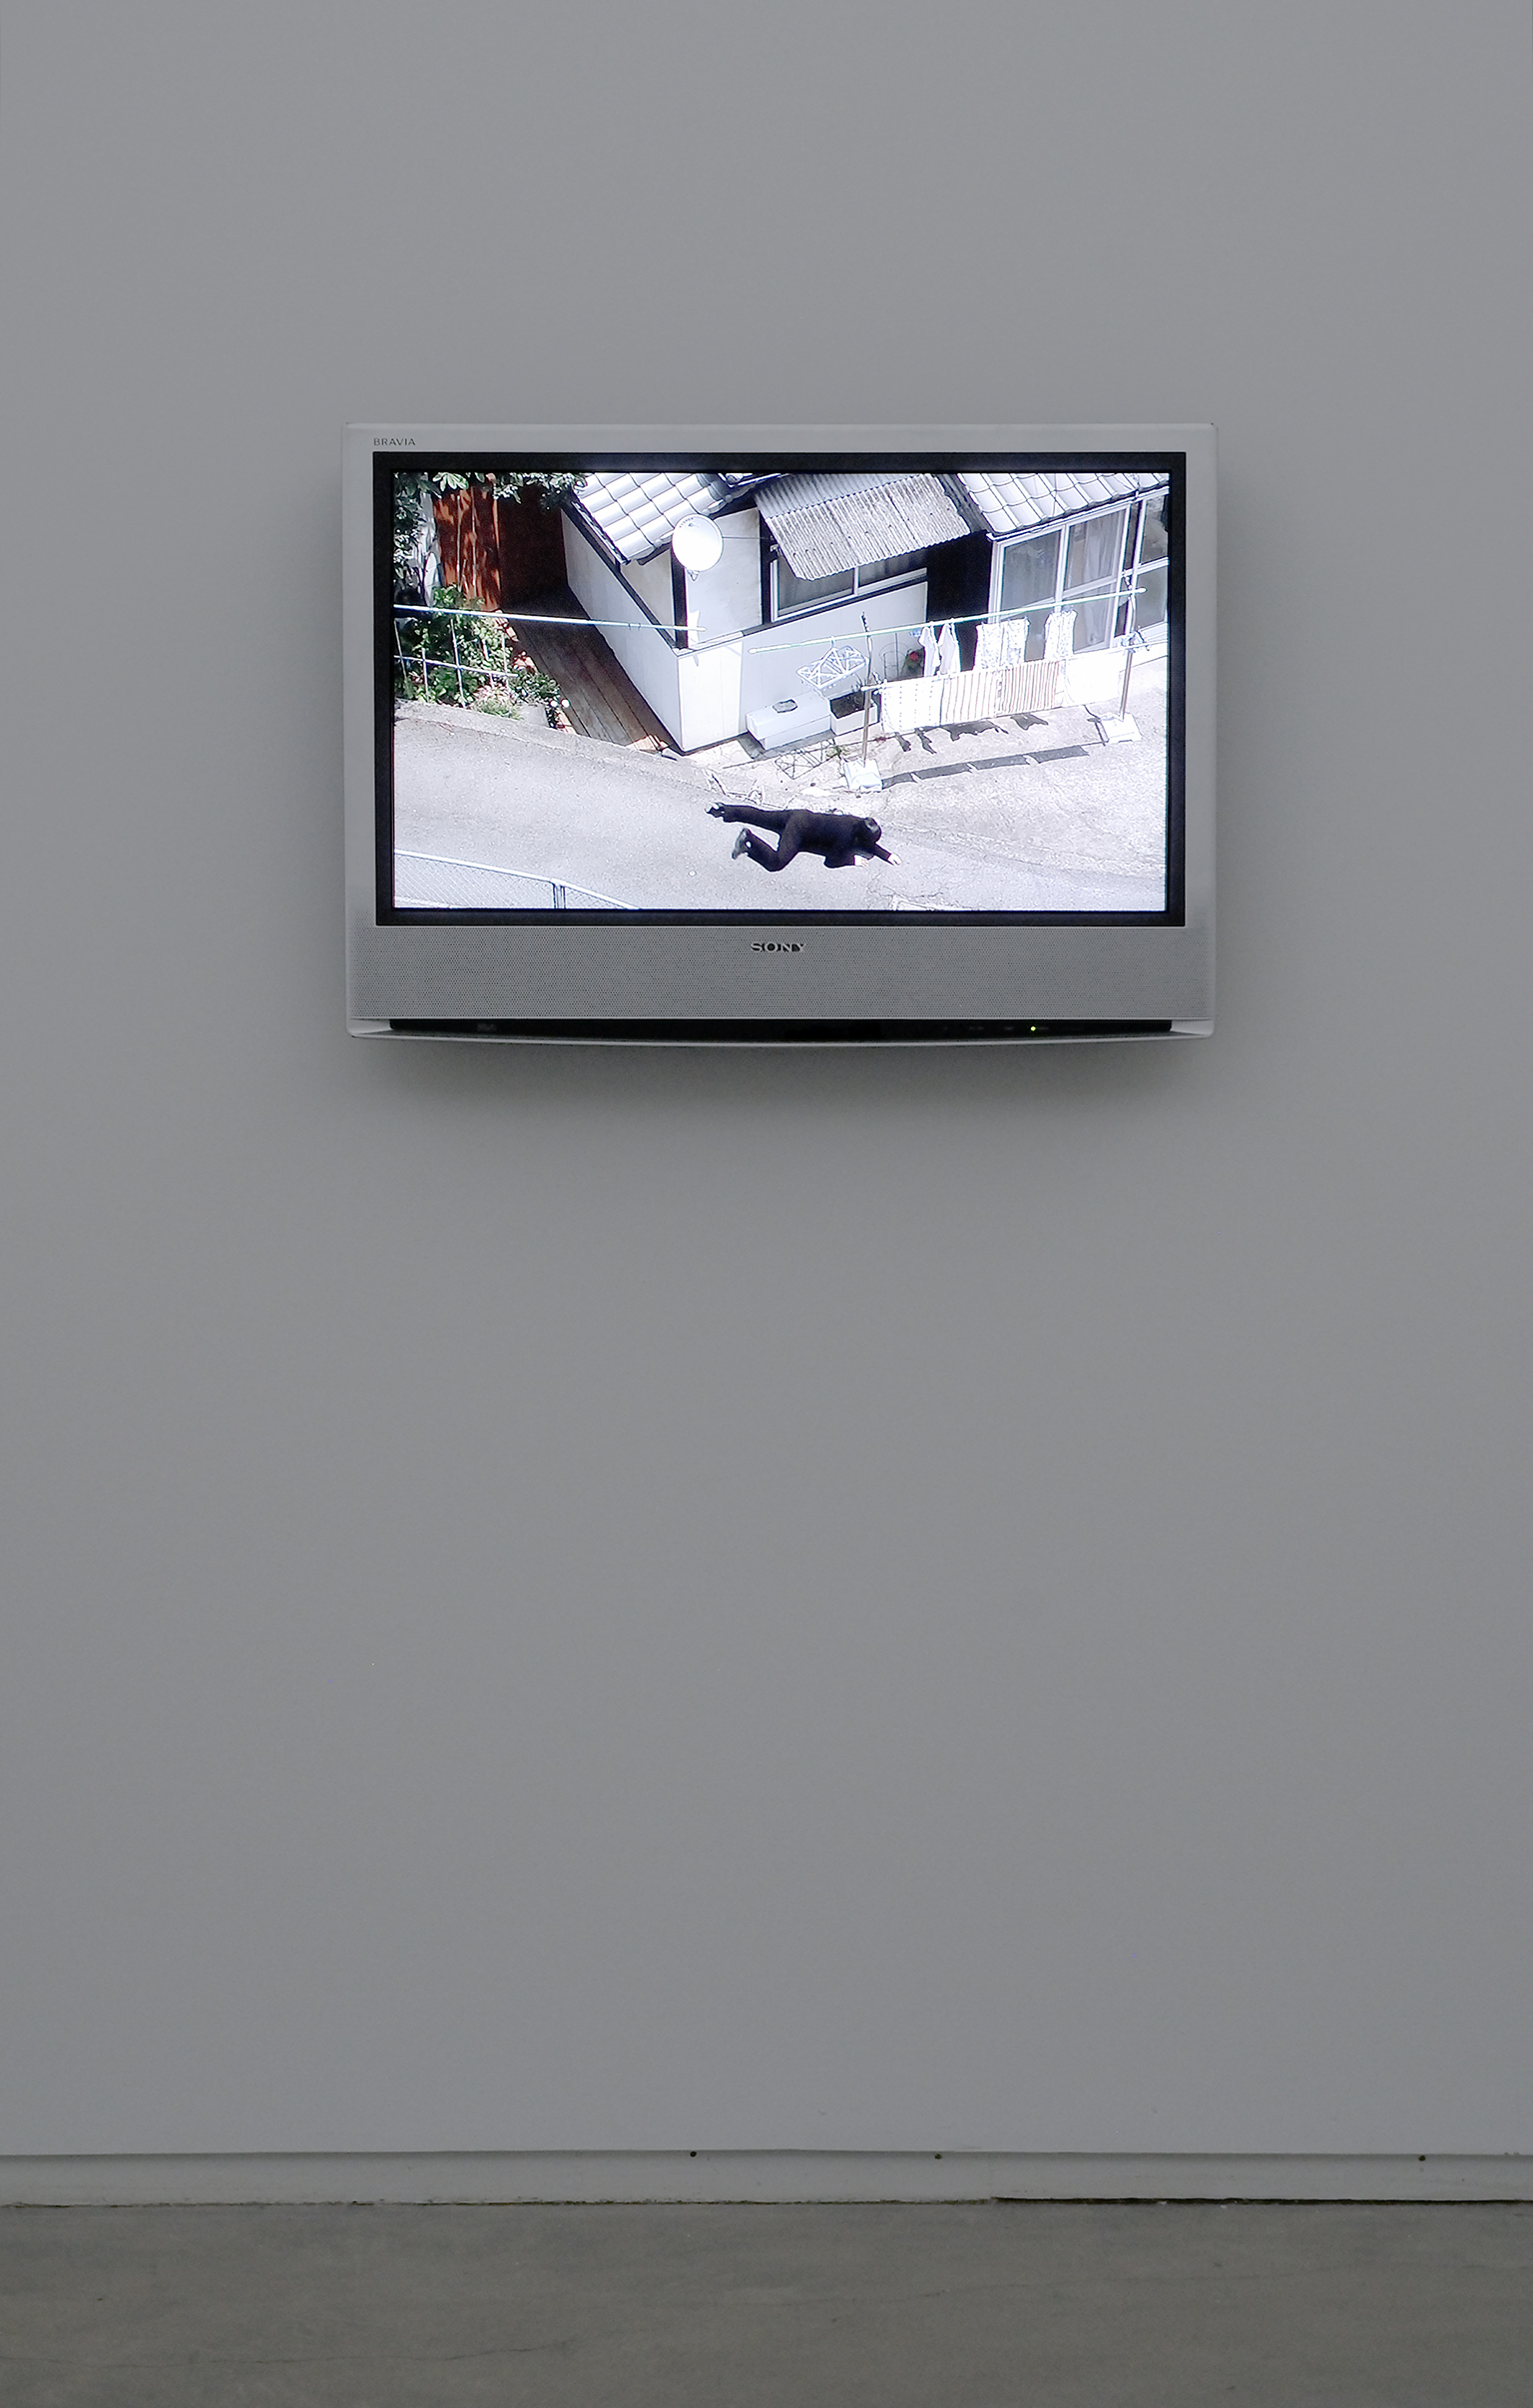 Jin-me Yoon, As It Is Becoming (Beppu, Japan): Kannawa District, 2008, single channel HD video, 22 minutes, 24 seconds by